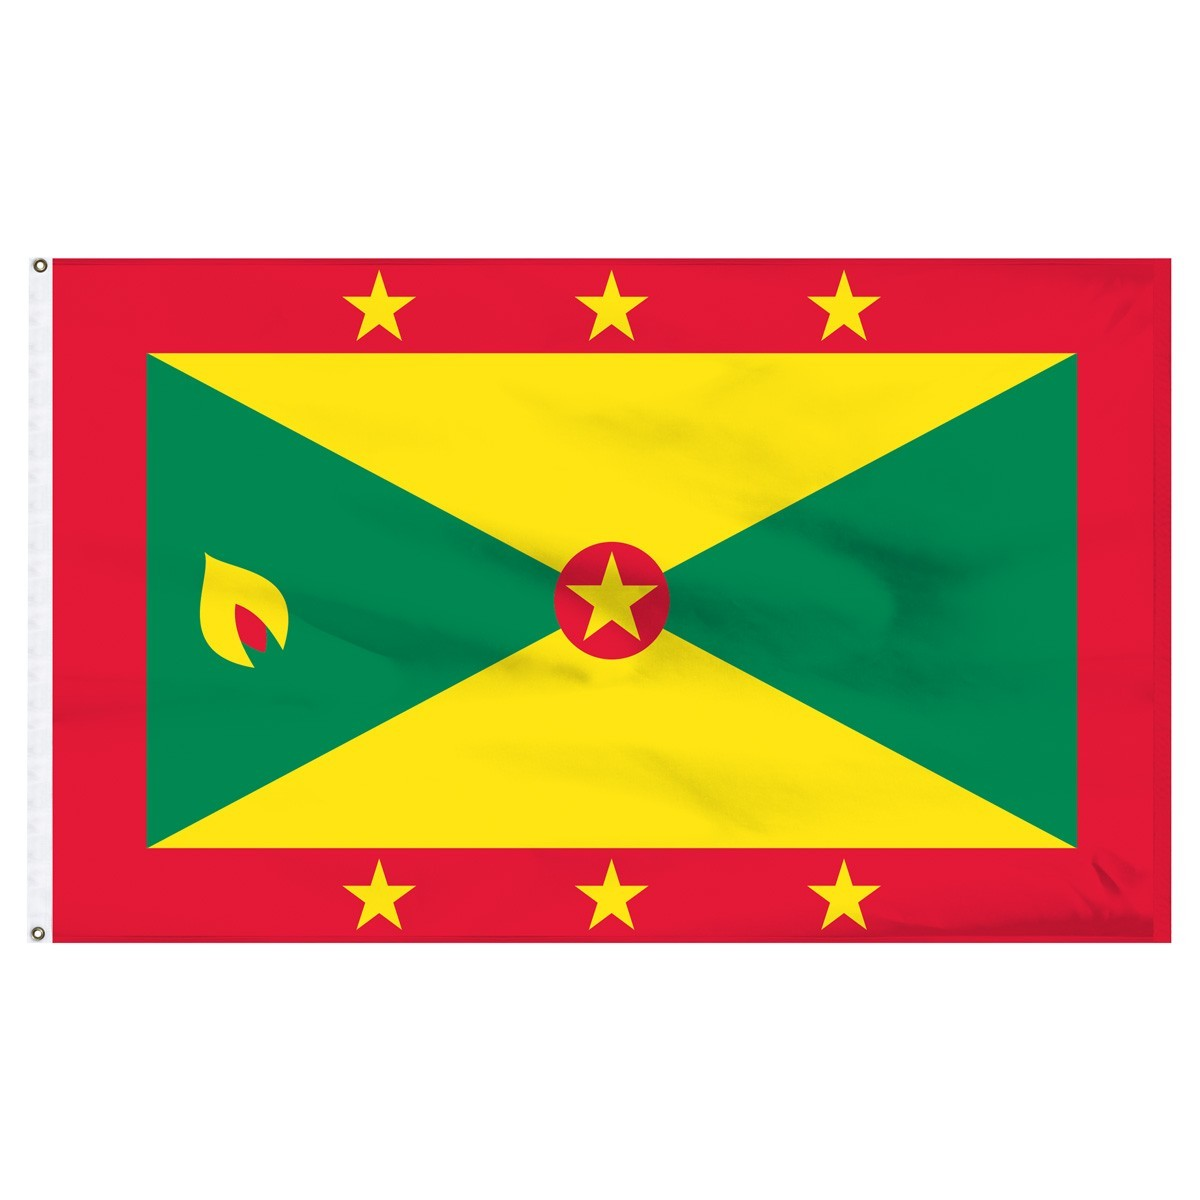 Grenada flags for sale 1-800 flags